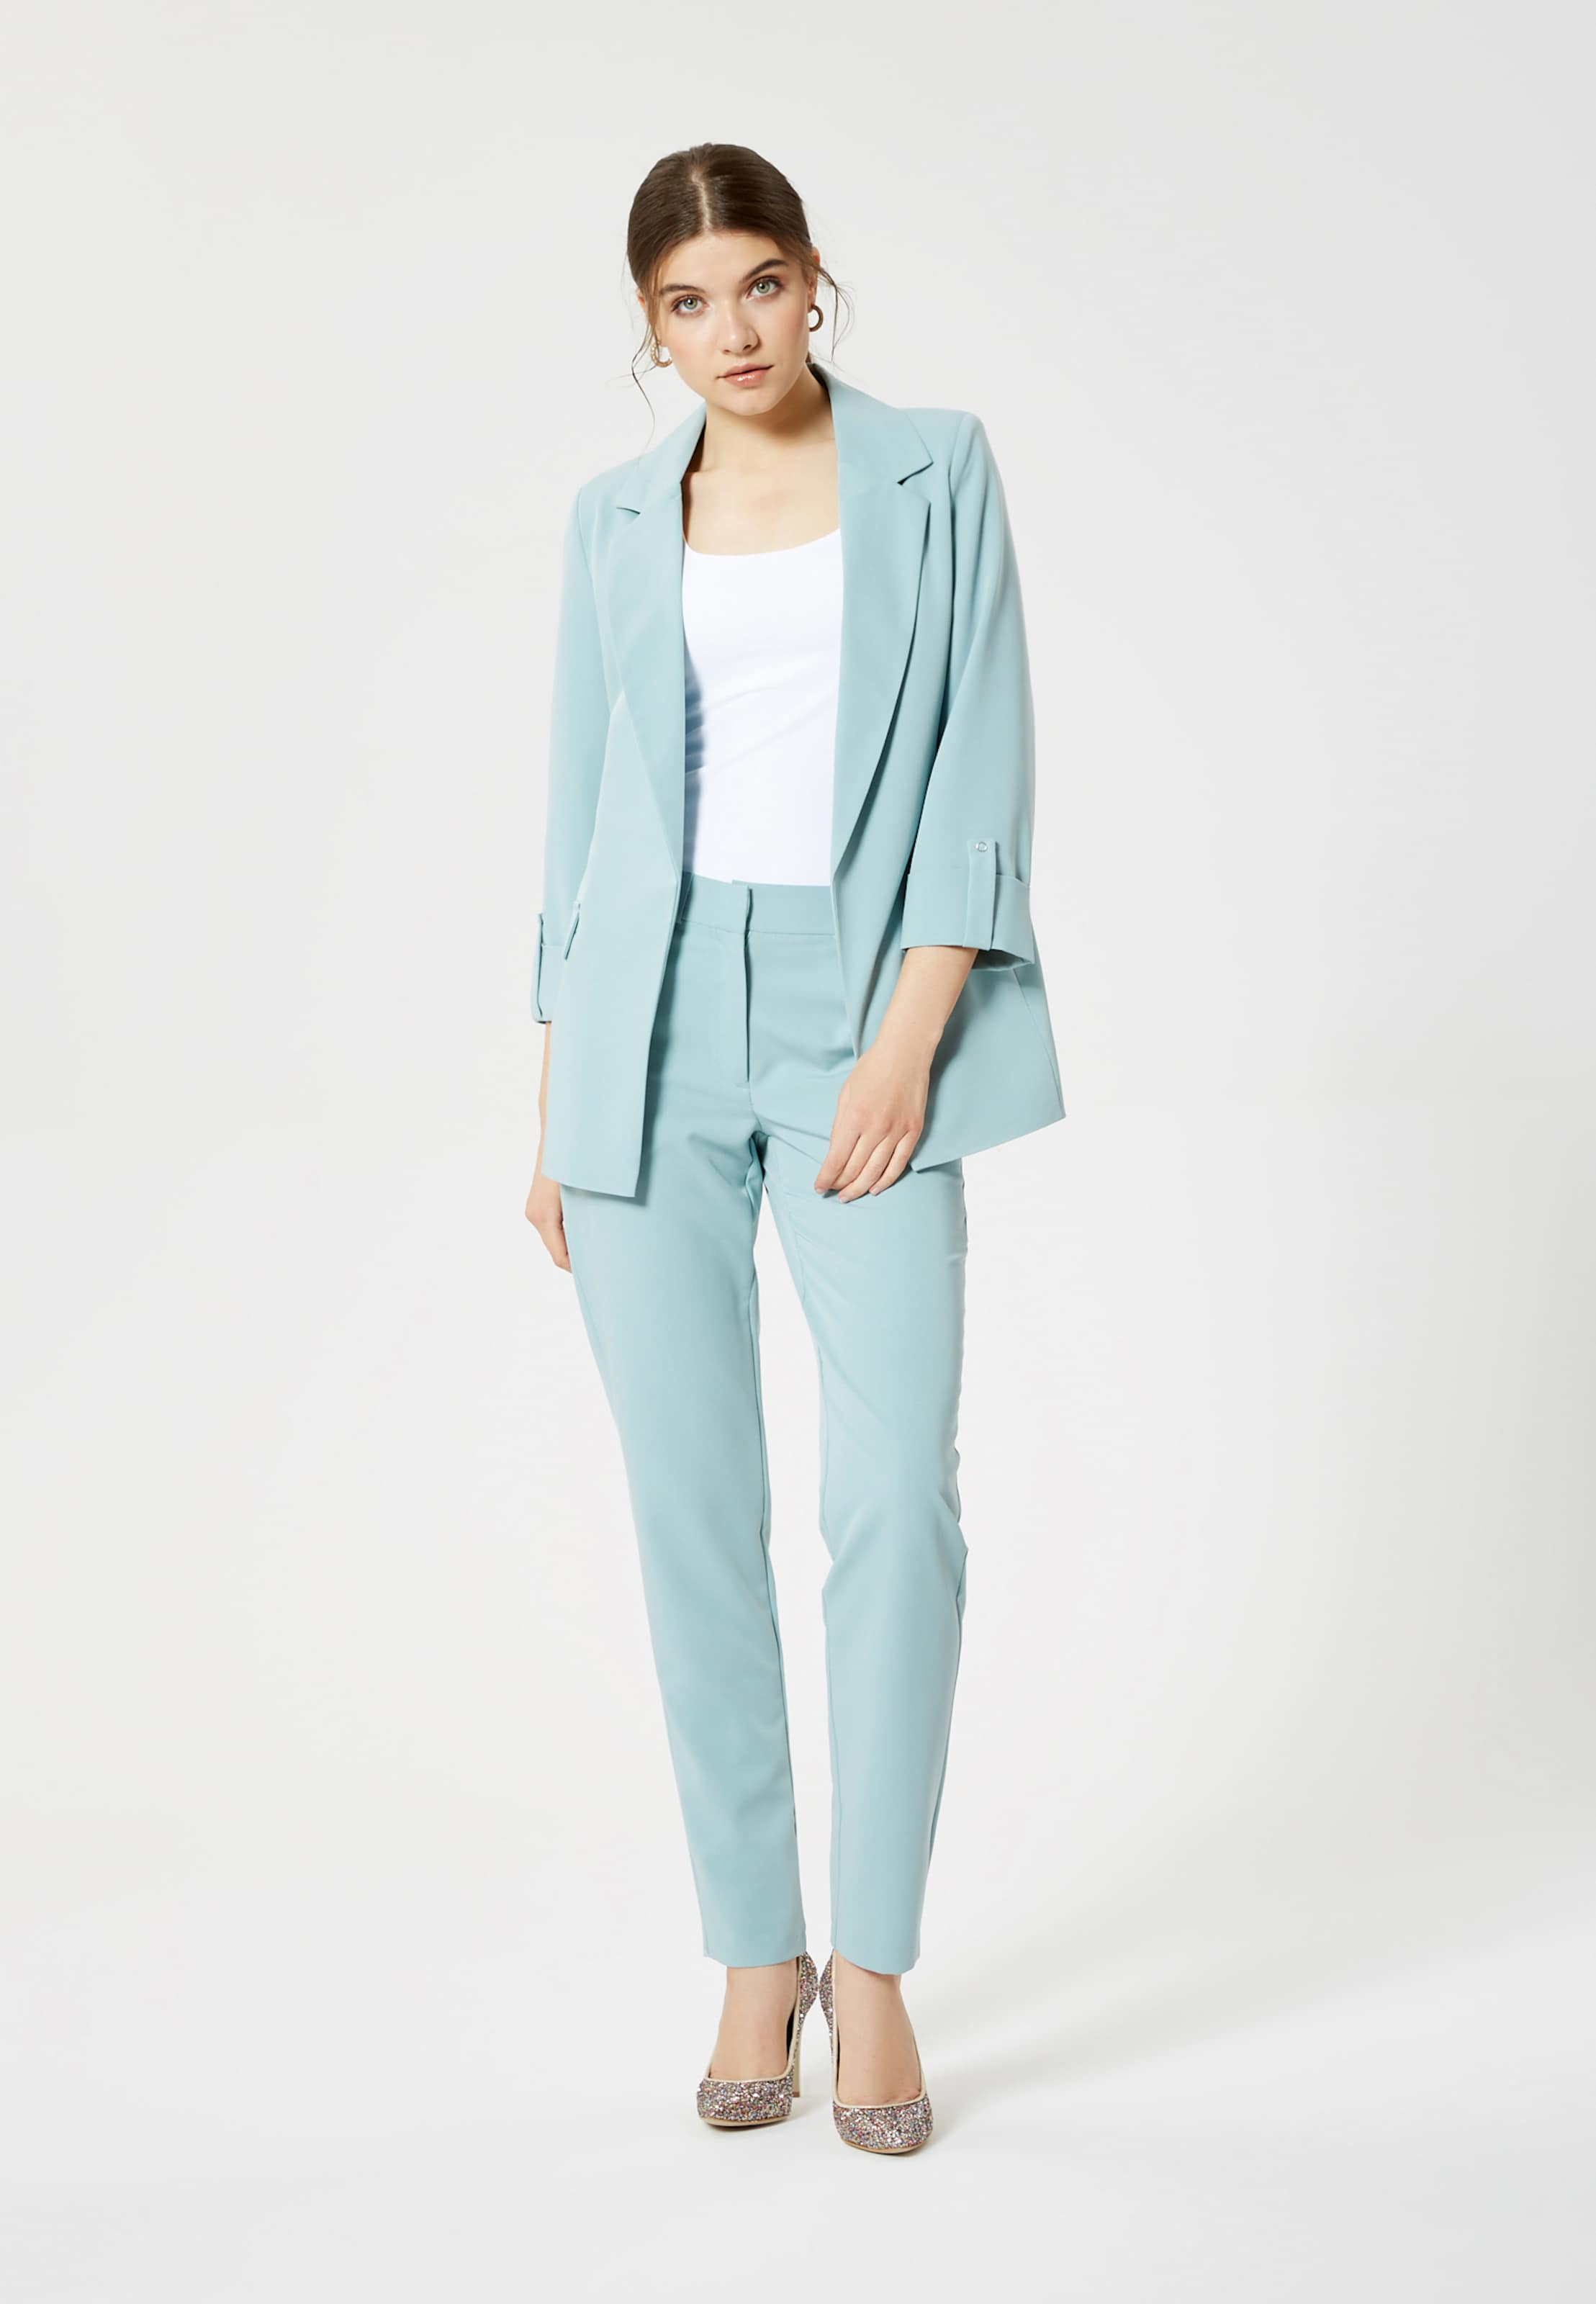 Blazer Mymo Mint Mymo In Blazer Mymo Mint In 6vgYbf7y